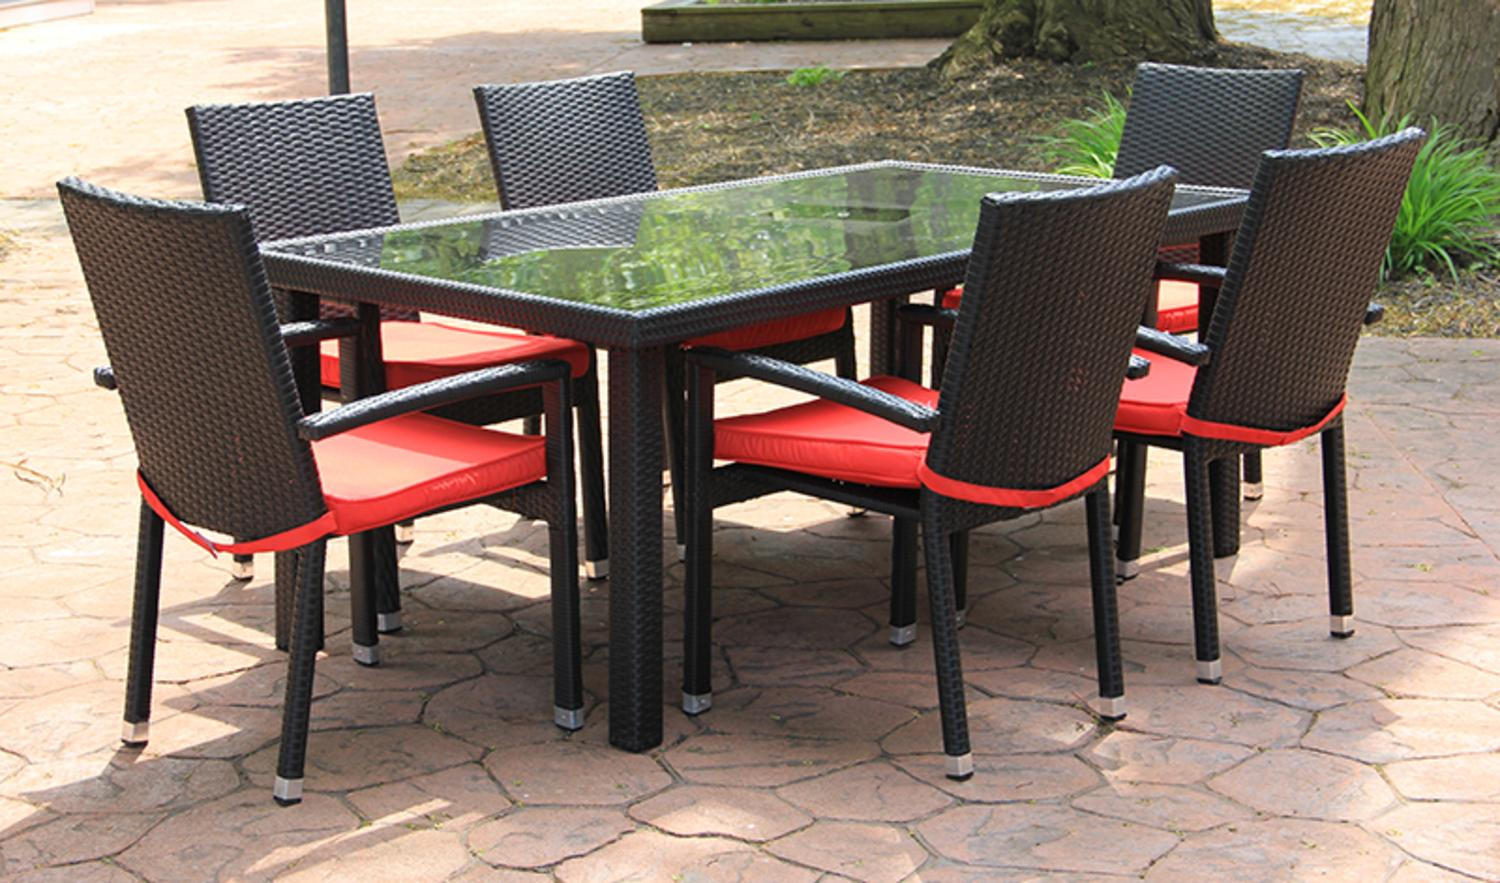 7 Piece Black Resin Wicker Outdoor Furniture Patio Dining Set   Red Cushions Part 52